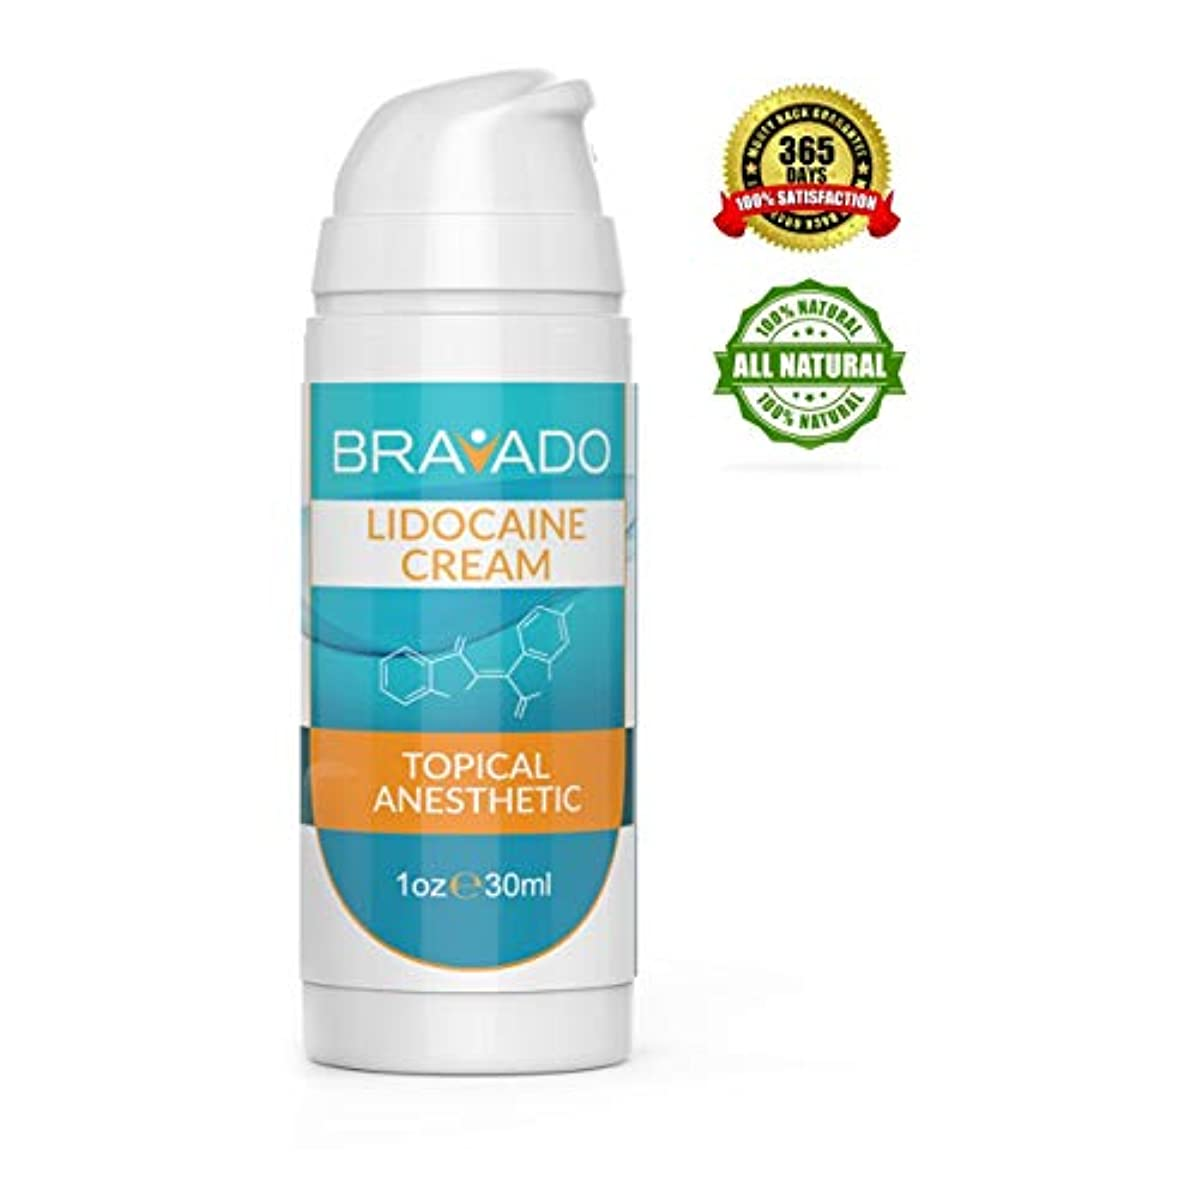 Premium Numbing Cream - Bravado Labs - 5% Lidocaine Topical Pain Treatment for Tattoos, Face, Laser Hair Removal, Brazilian Waxing, Microblading, Microneedling - Maximum Strength (1 oz)